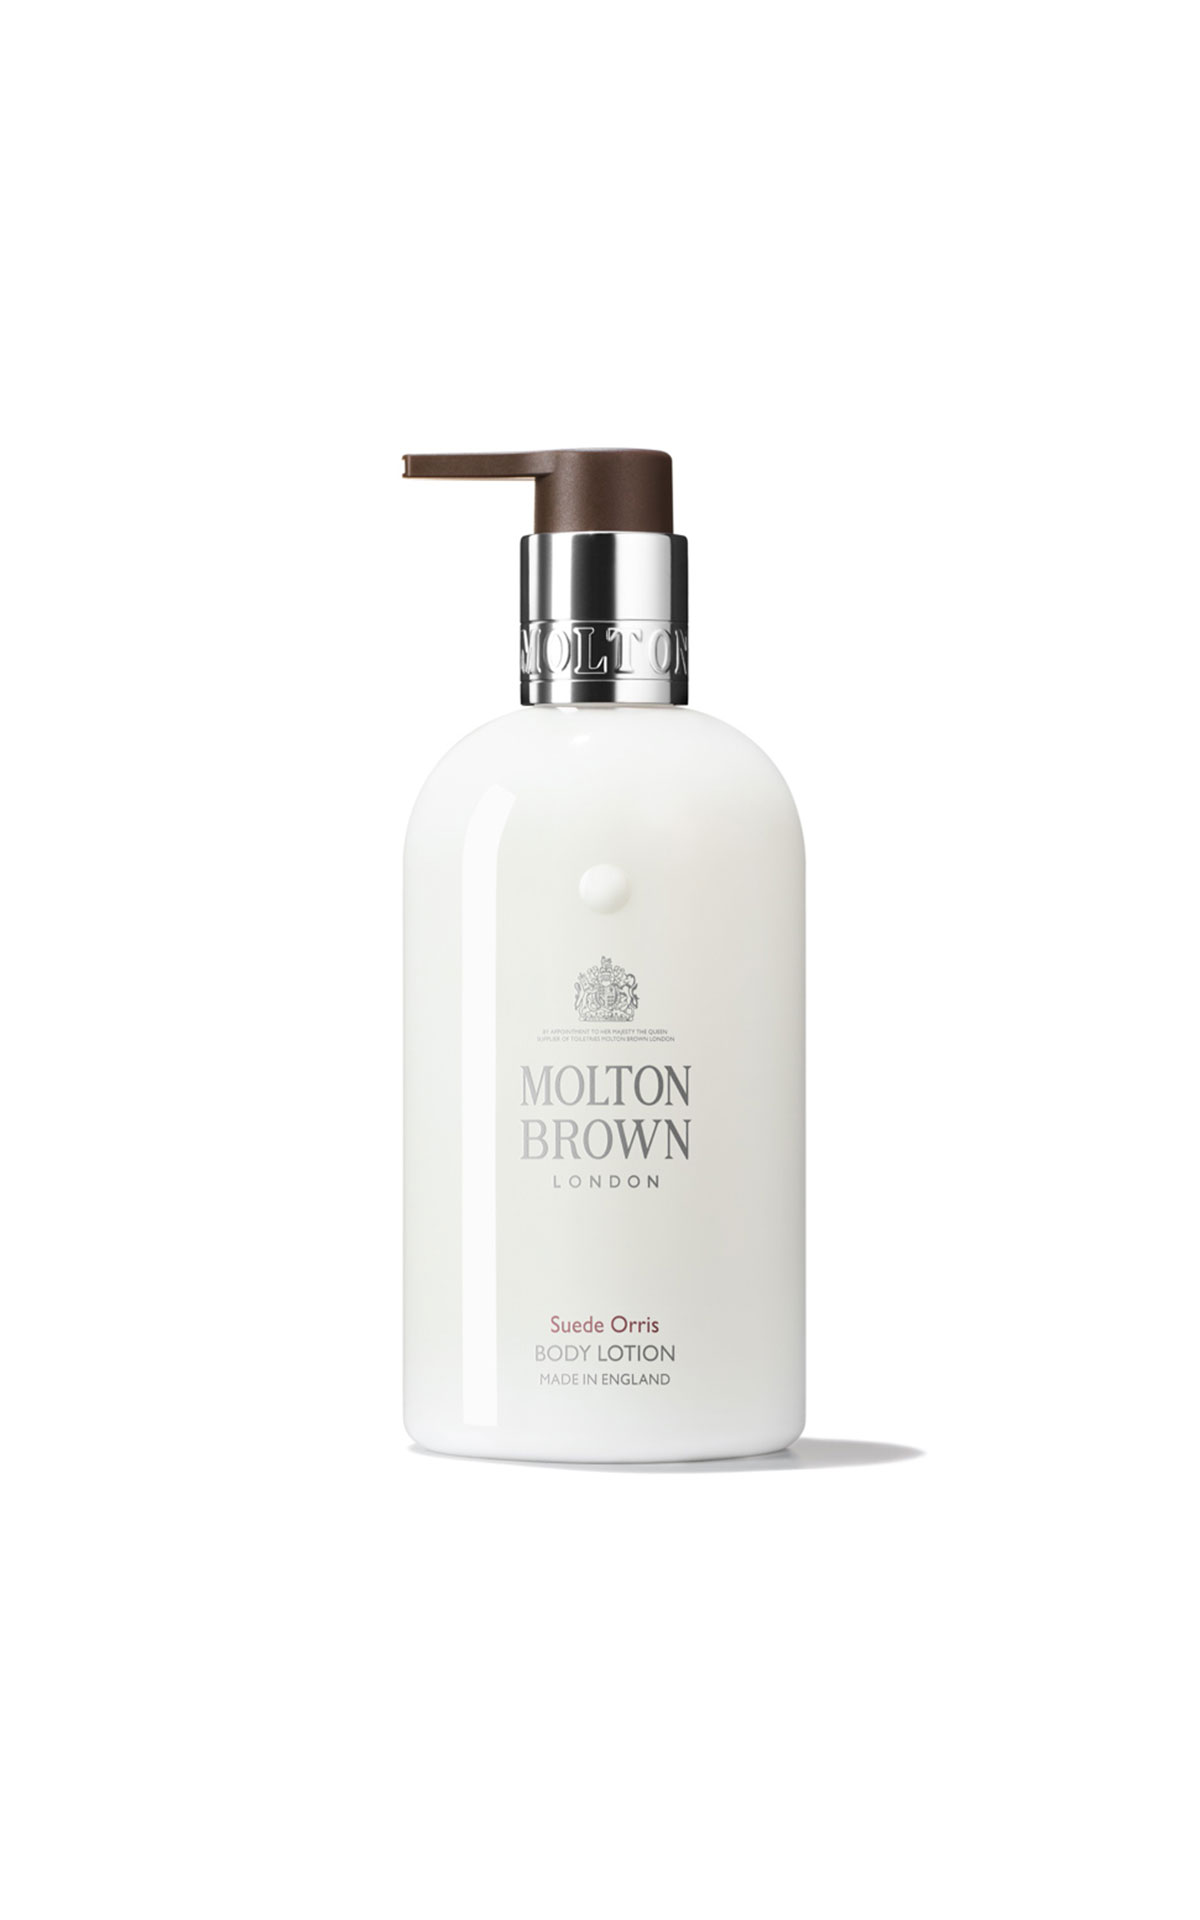 Molton Brown Suede orris body lotion from Bicester Village